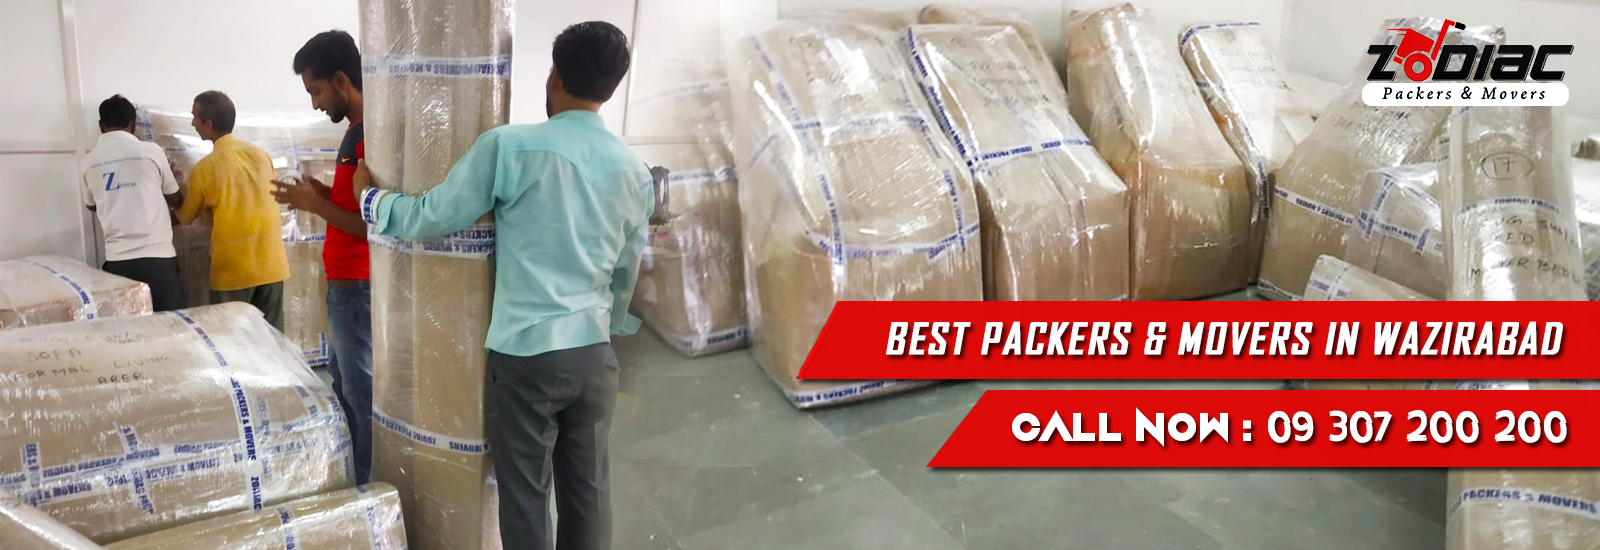 Packers and Movers in Wazirabad